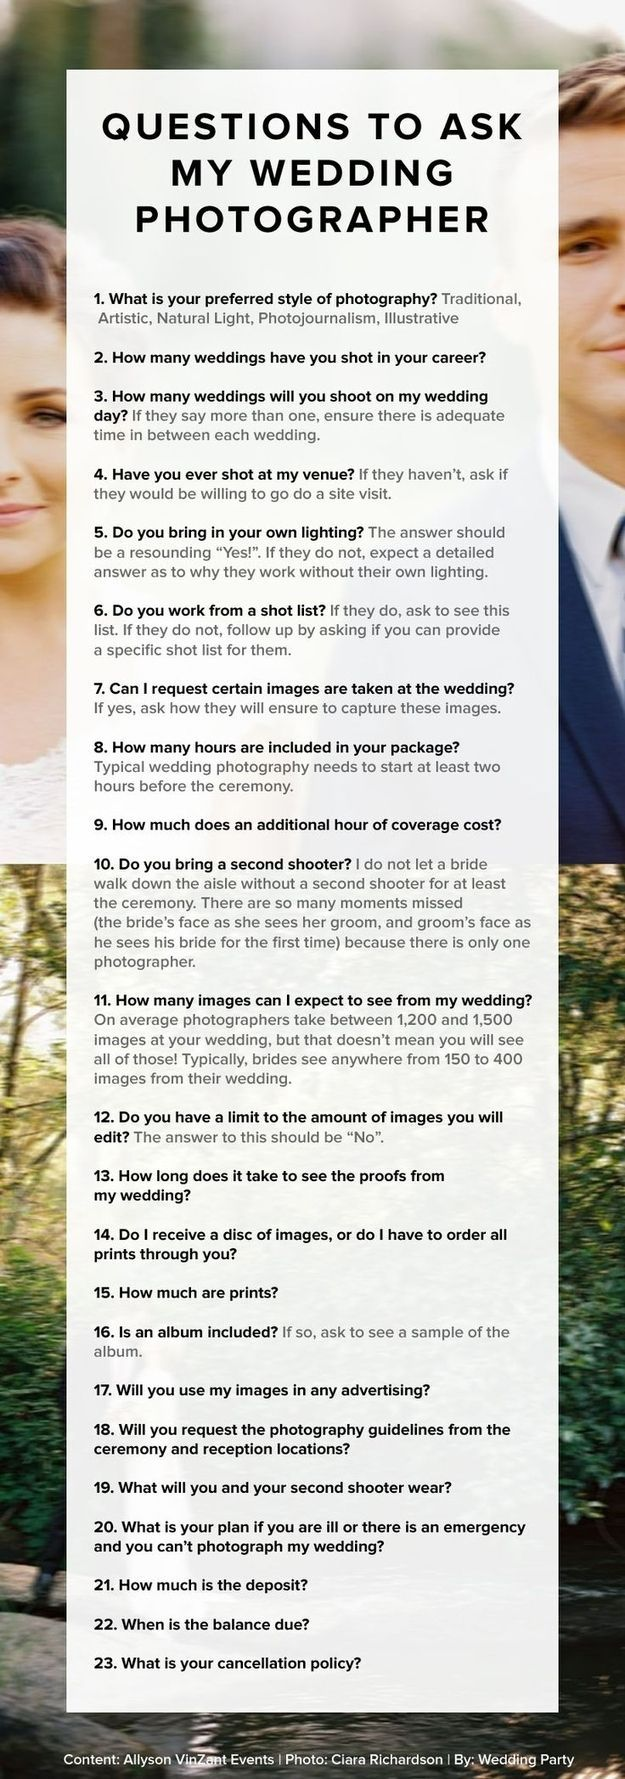 wedding planning tips - questions to ask my wedding photographer